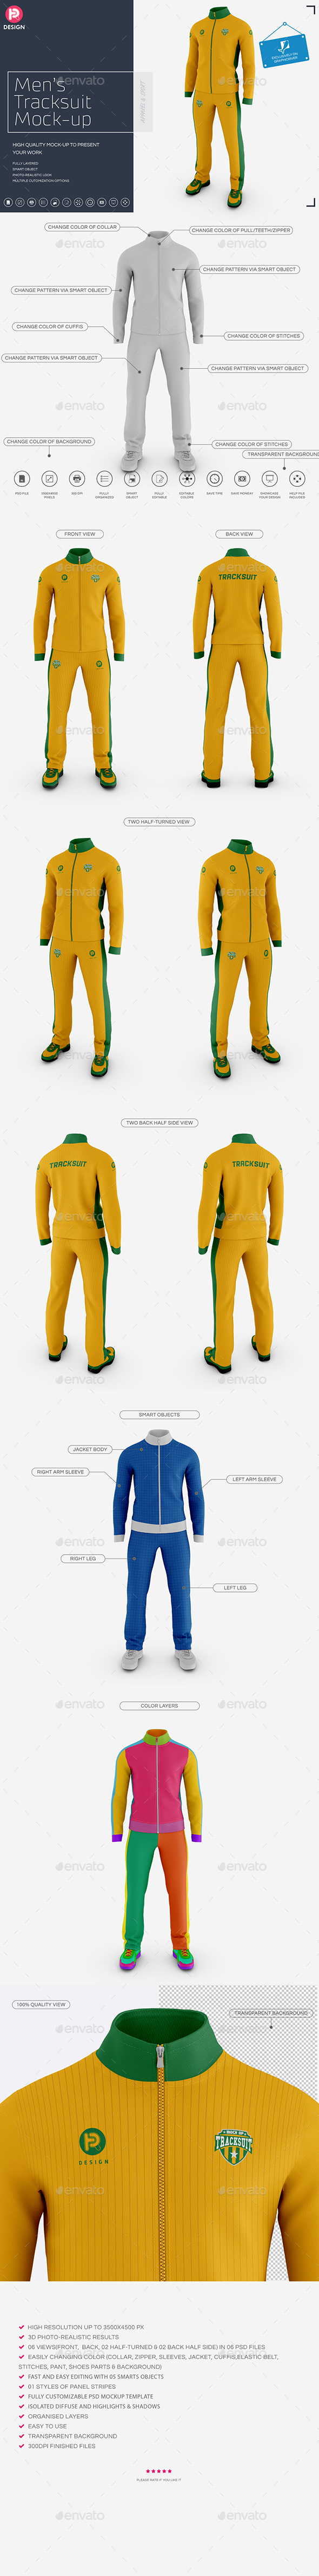 Men's Tracksuit Stand Collar Mock up - Miscellaneous Apparel